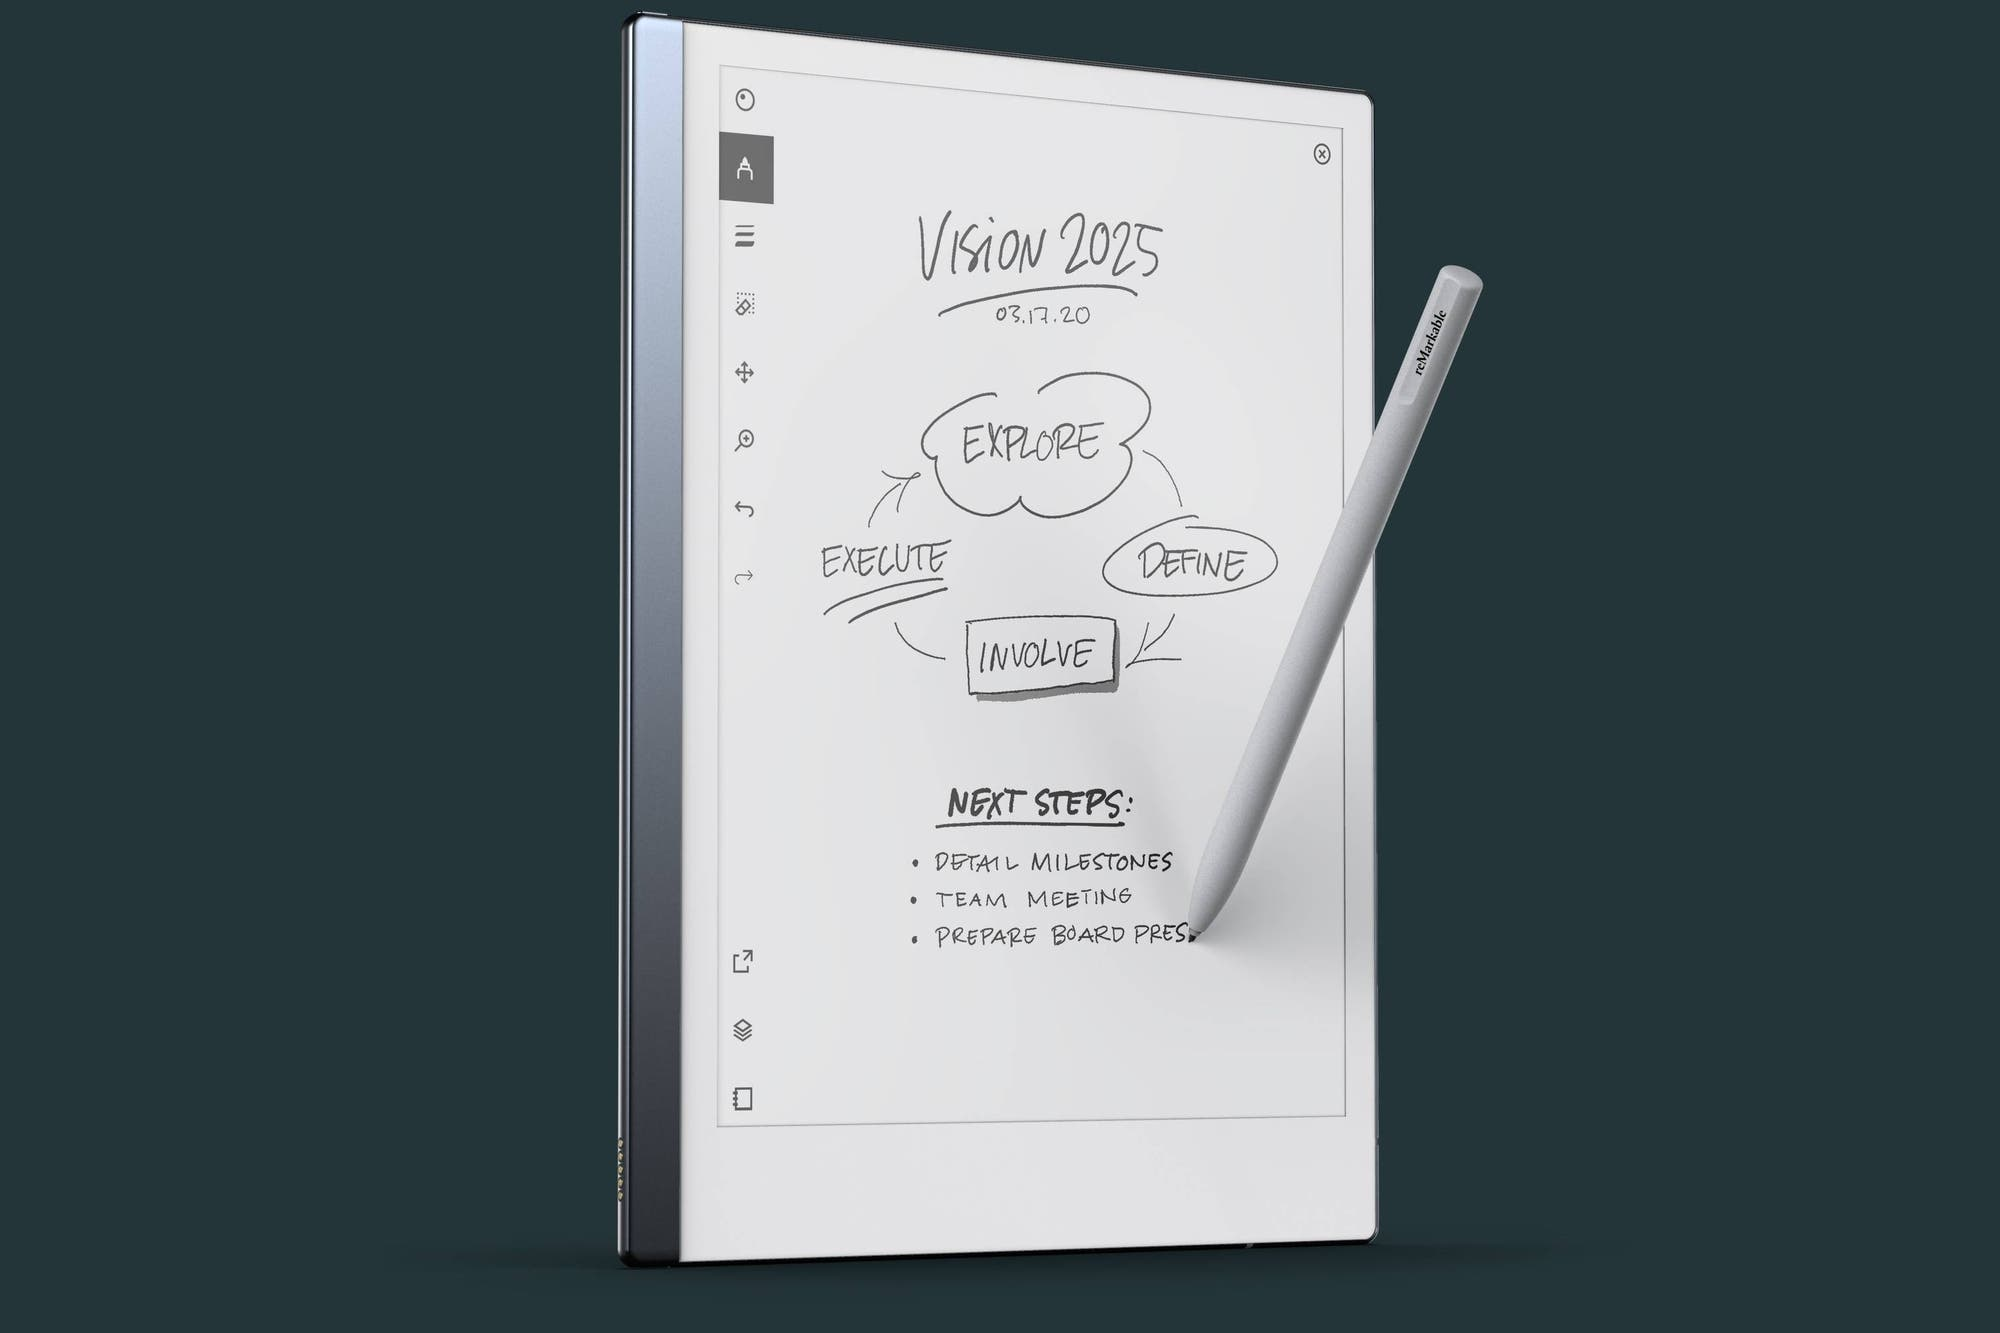 ReMarkable 2, the tablet that looks like paper and allows you to write freehand